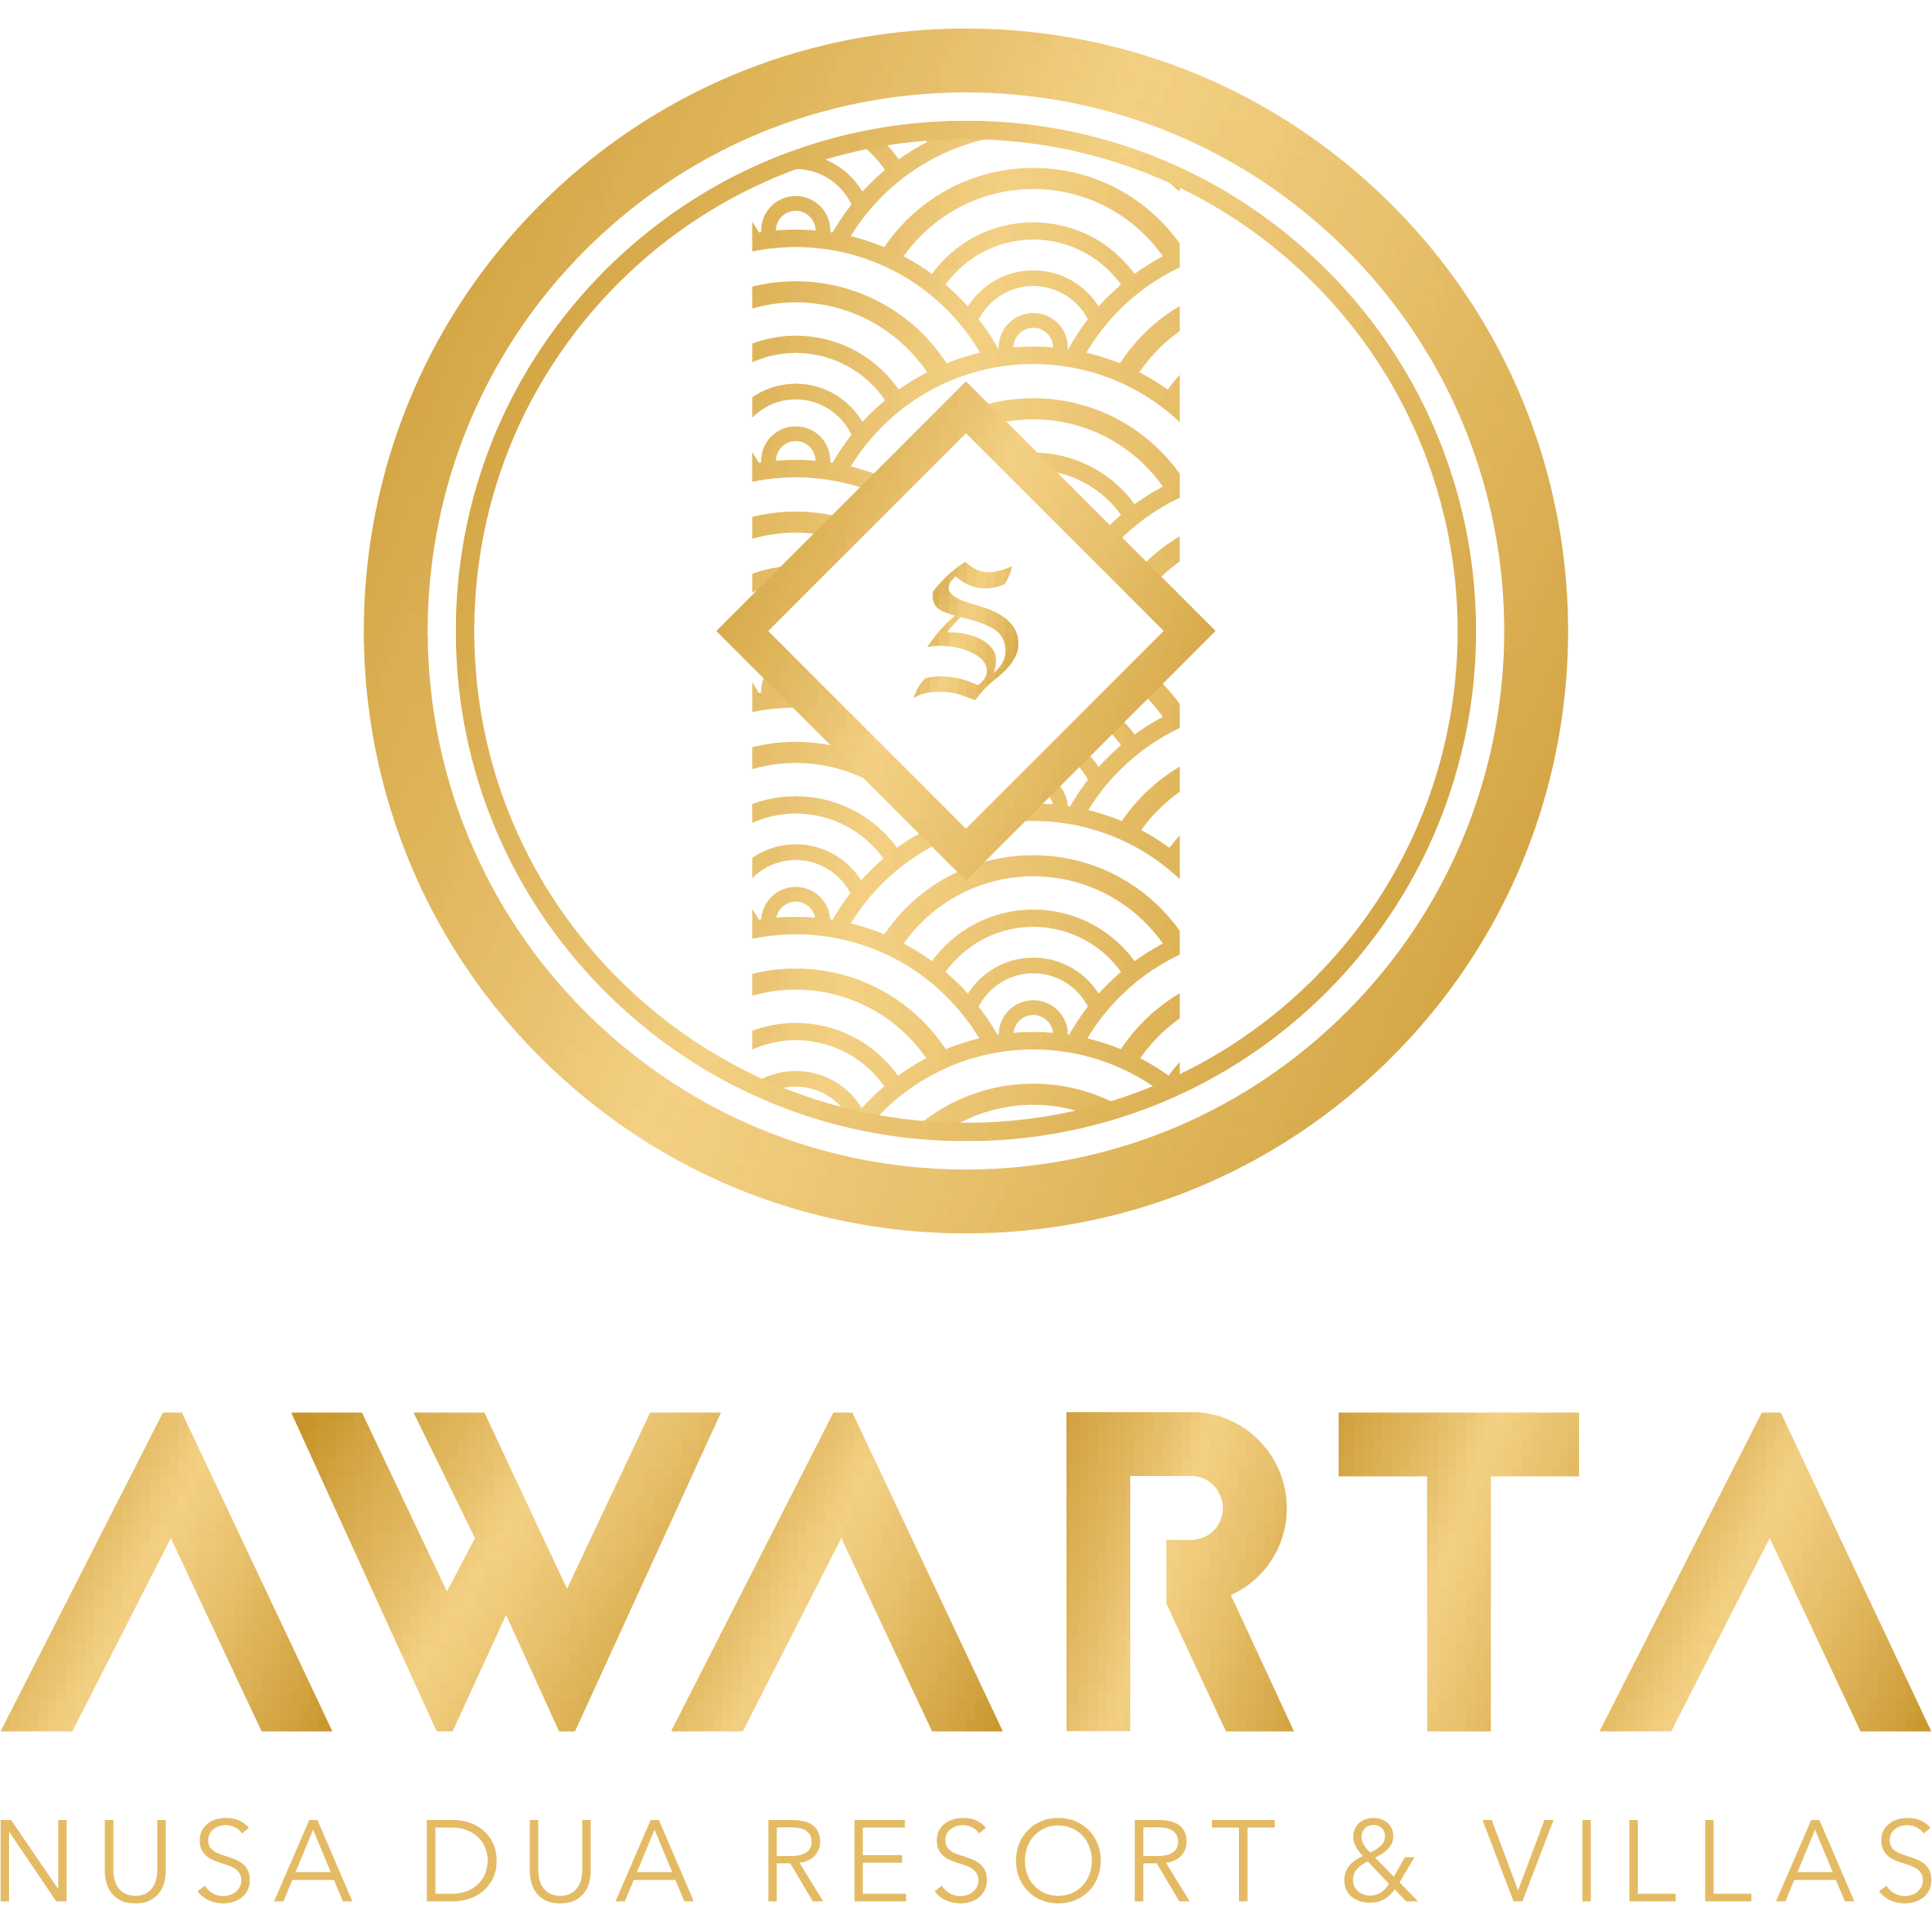 Awarta Nusa Dua Resort & Villas